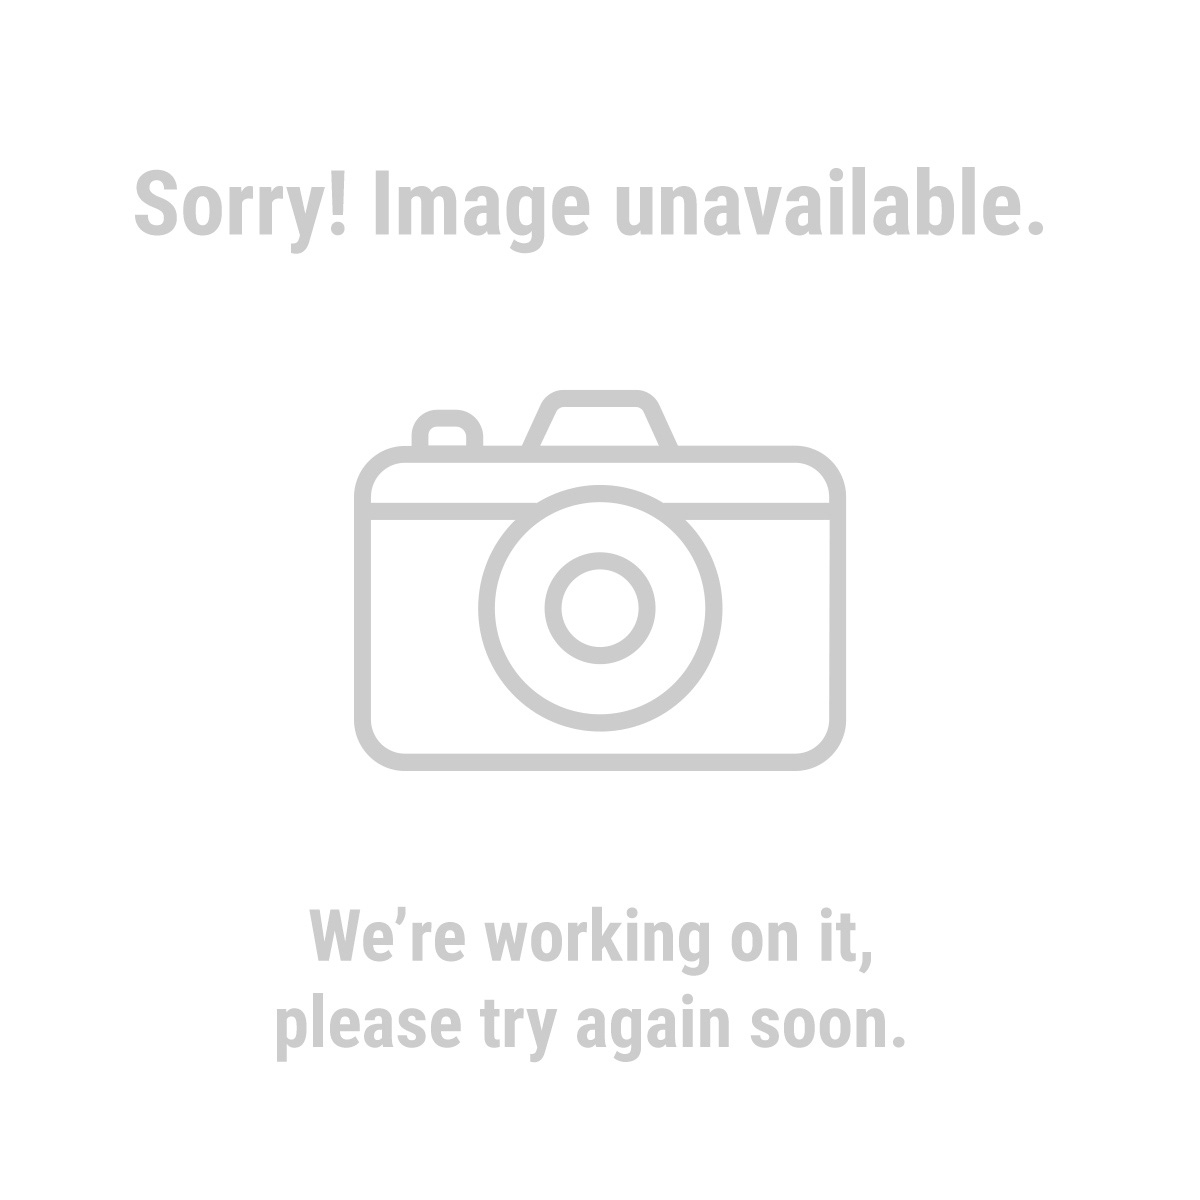 "Pittsburgh 93295 1"" SAE/Metric Digital Indicator"